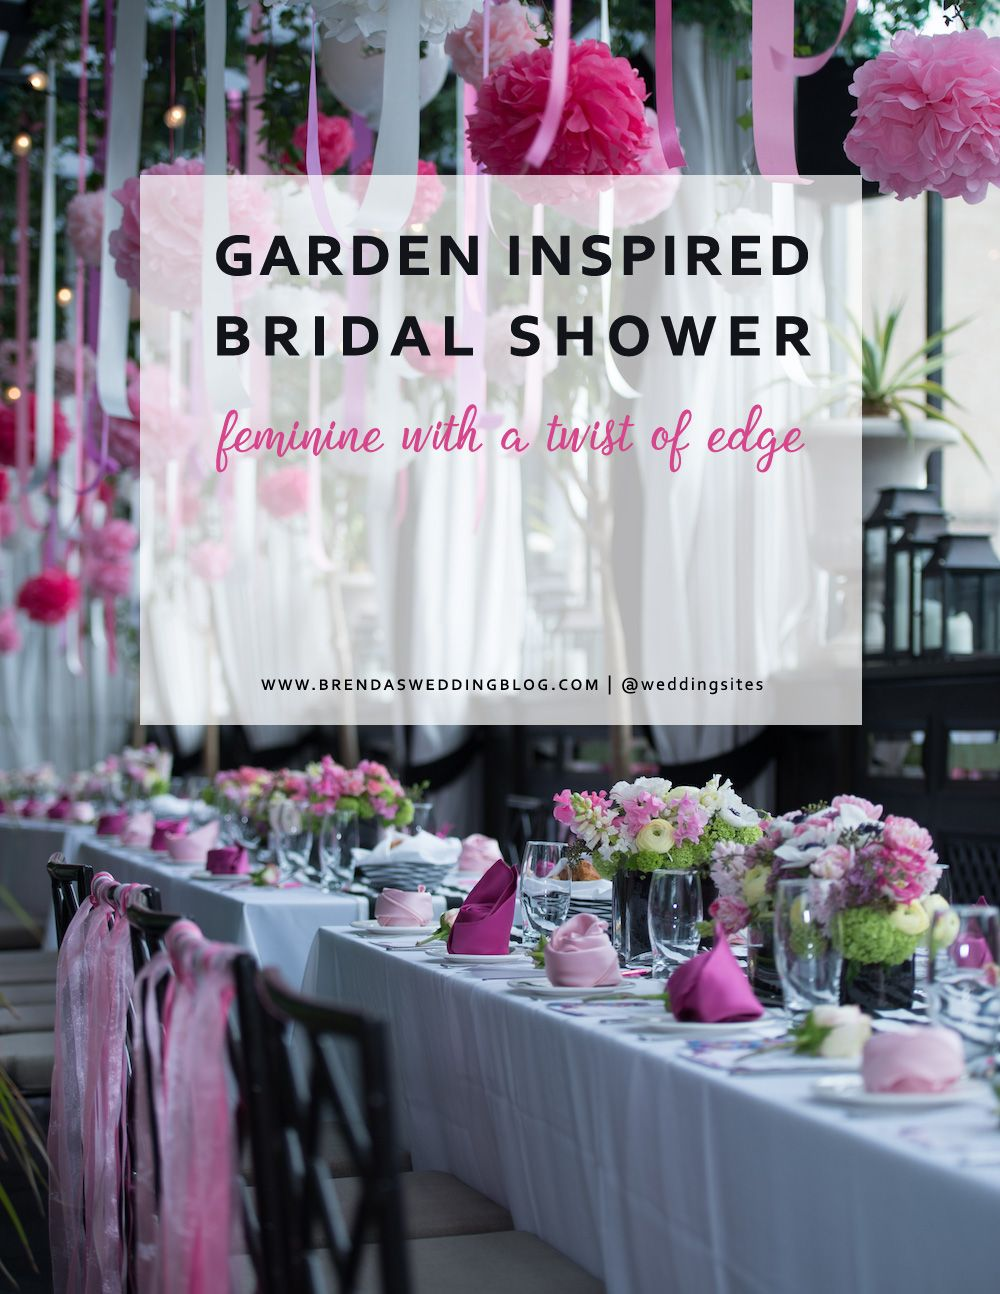 a modern nyc bridal shower where the bride to bes mantra is feminine with a twist of edge lots of black and white stripes reminiscent of kate spade